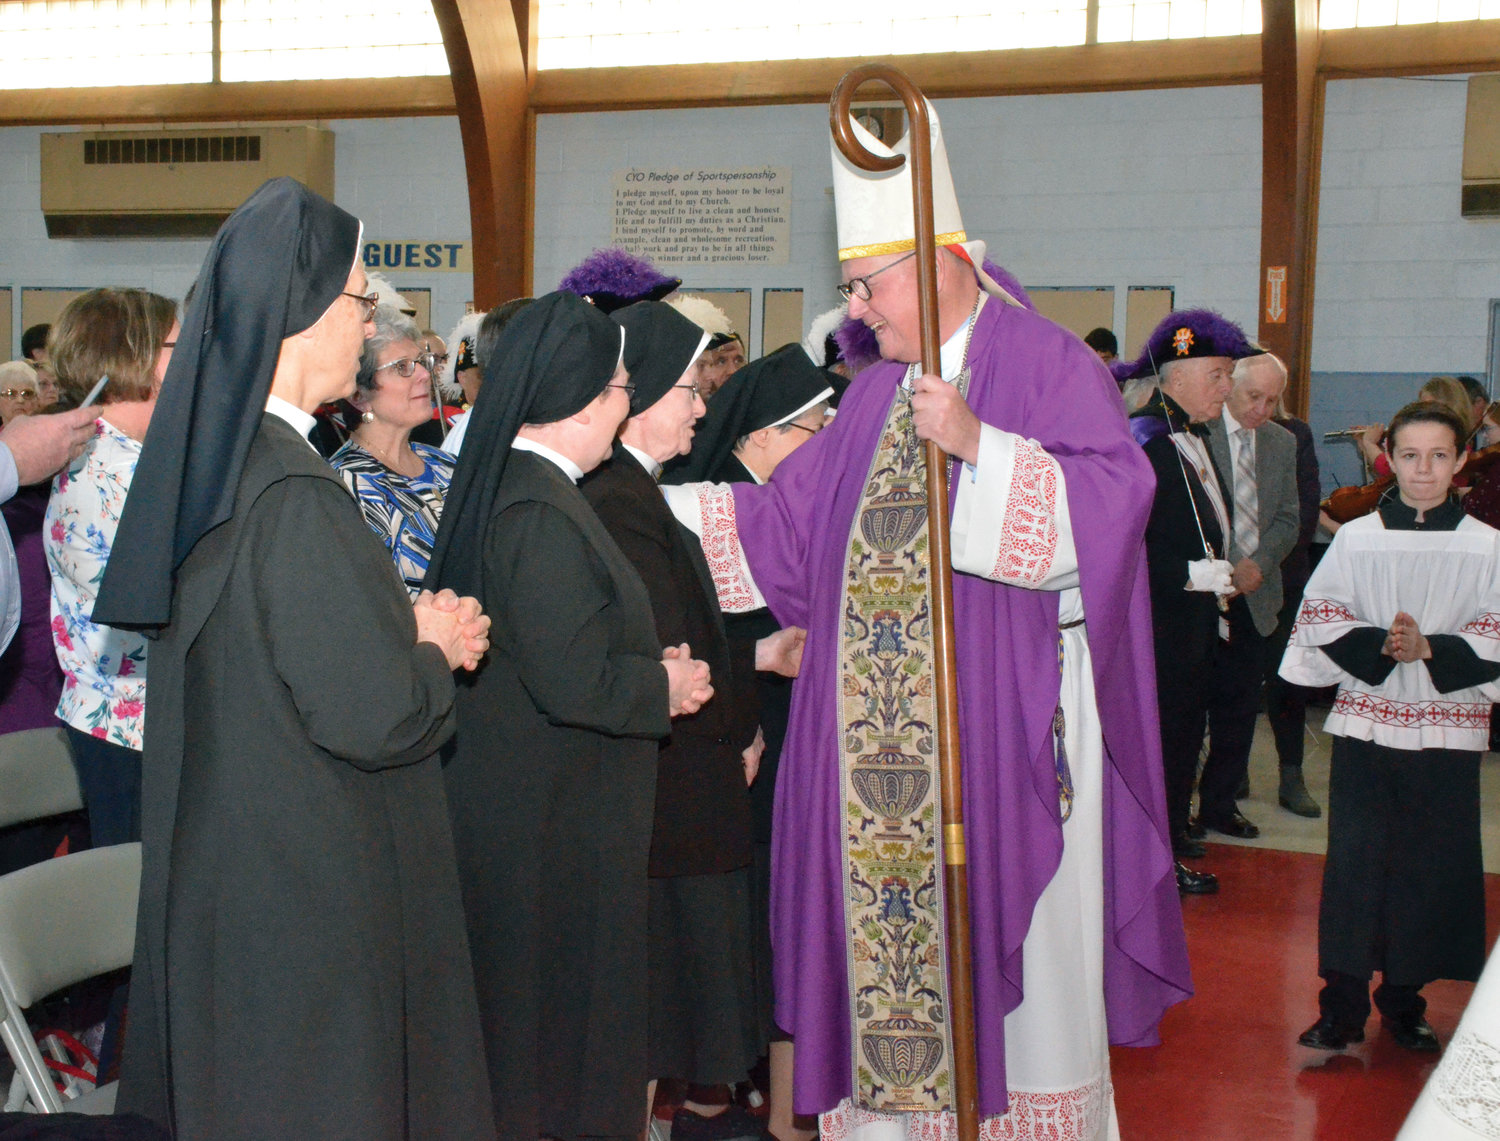 The Carmelite Sisters for the Aged and Infirm from Germantown were honored guests.